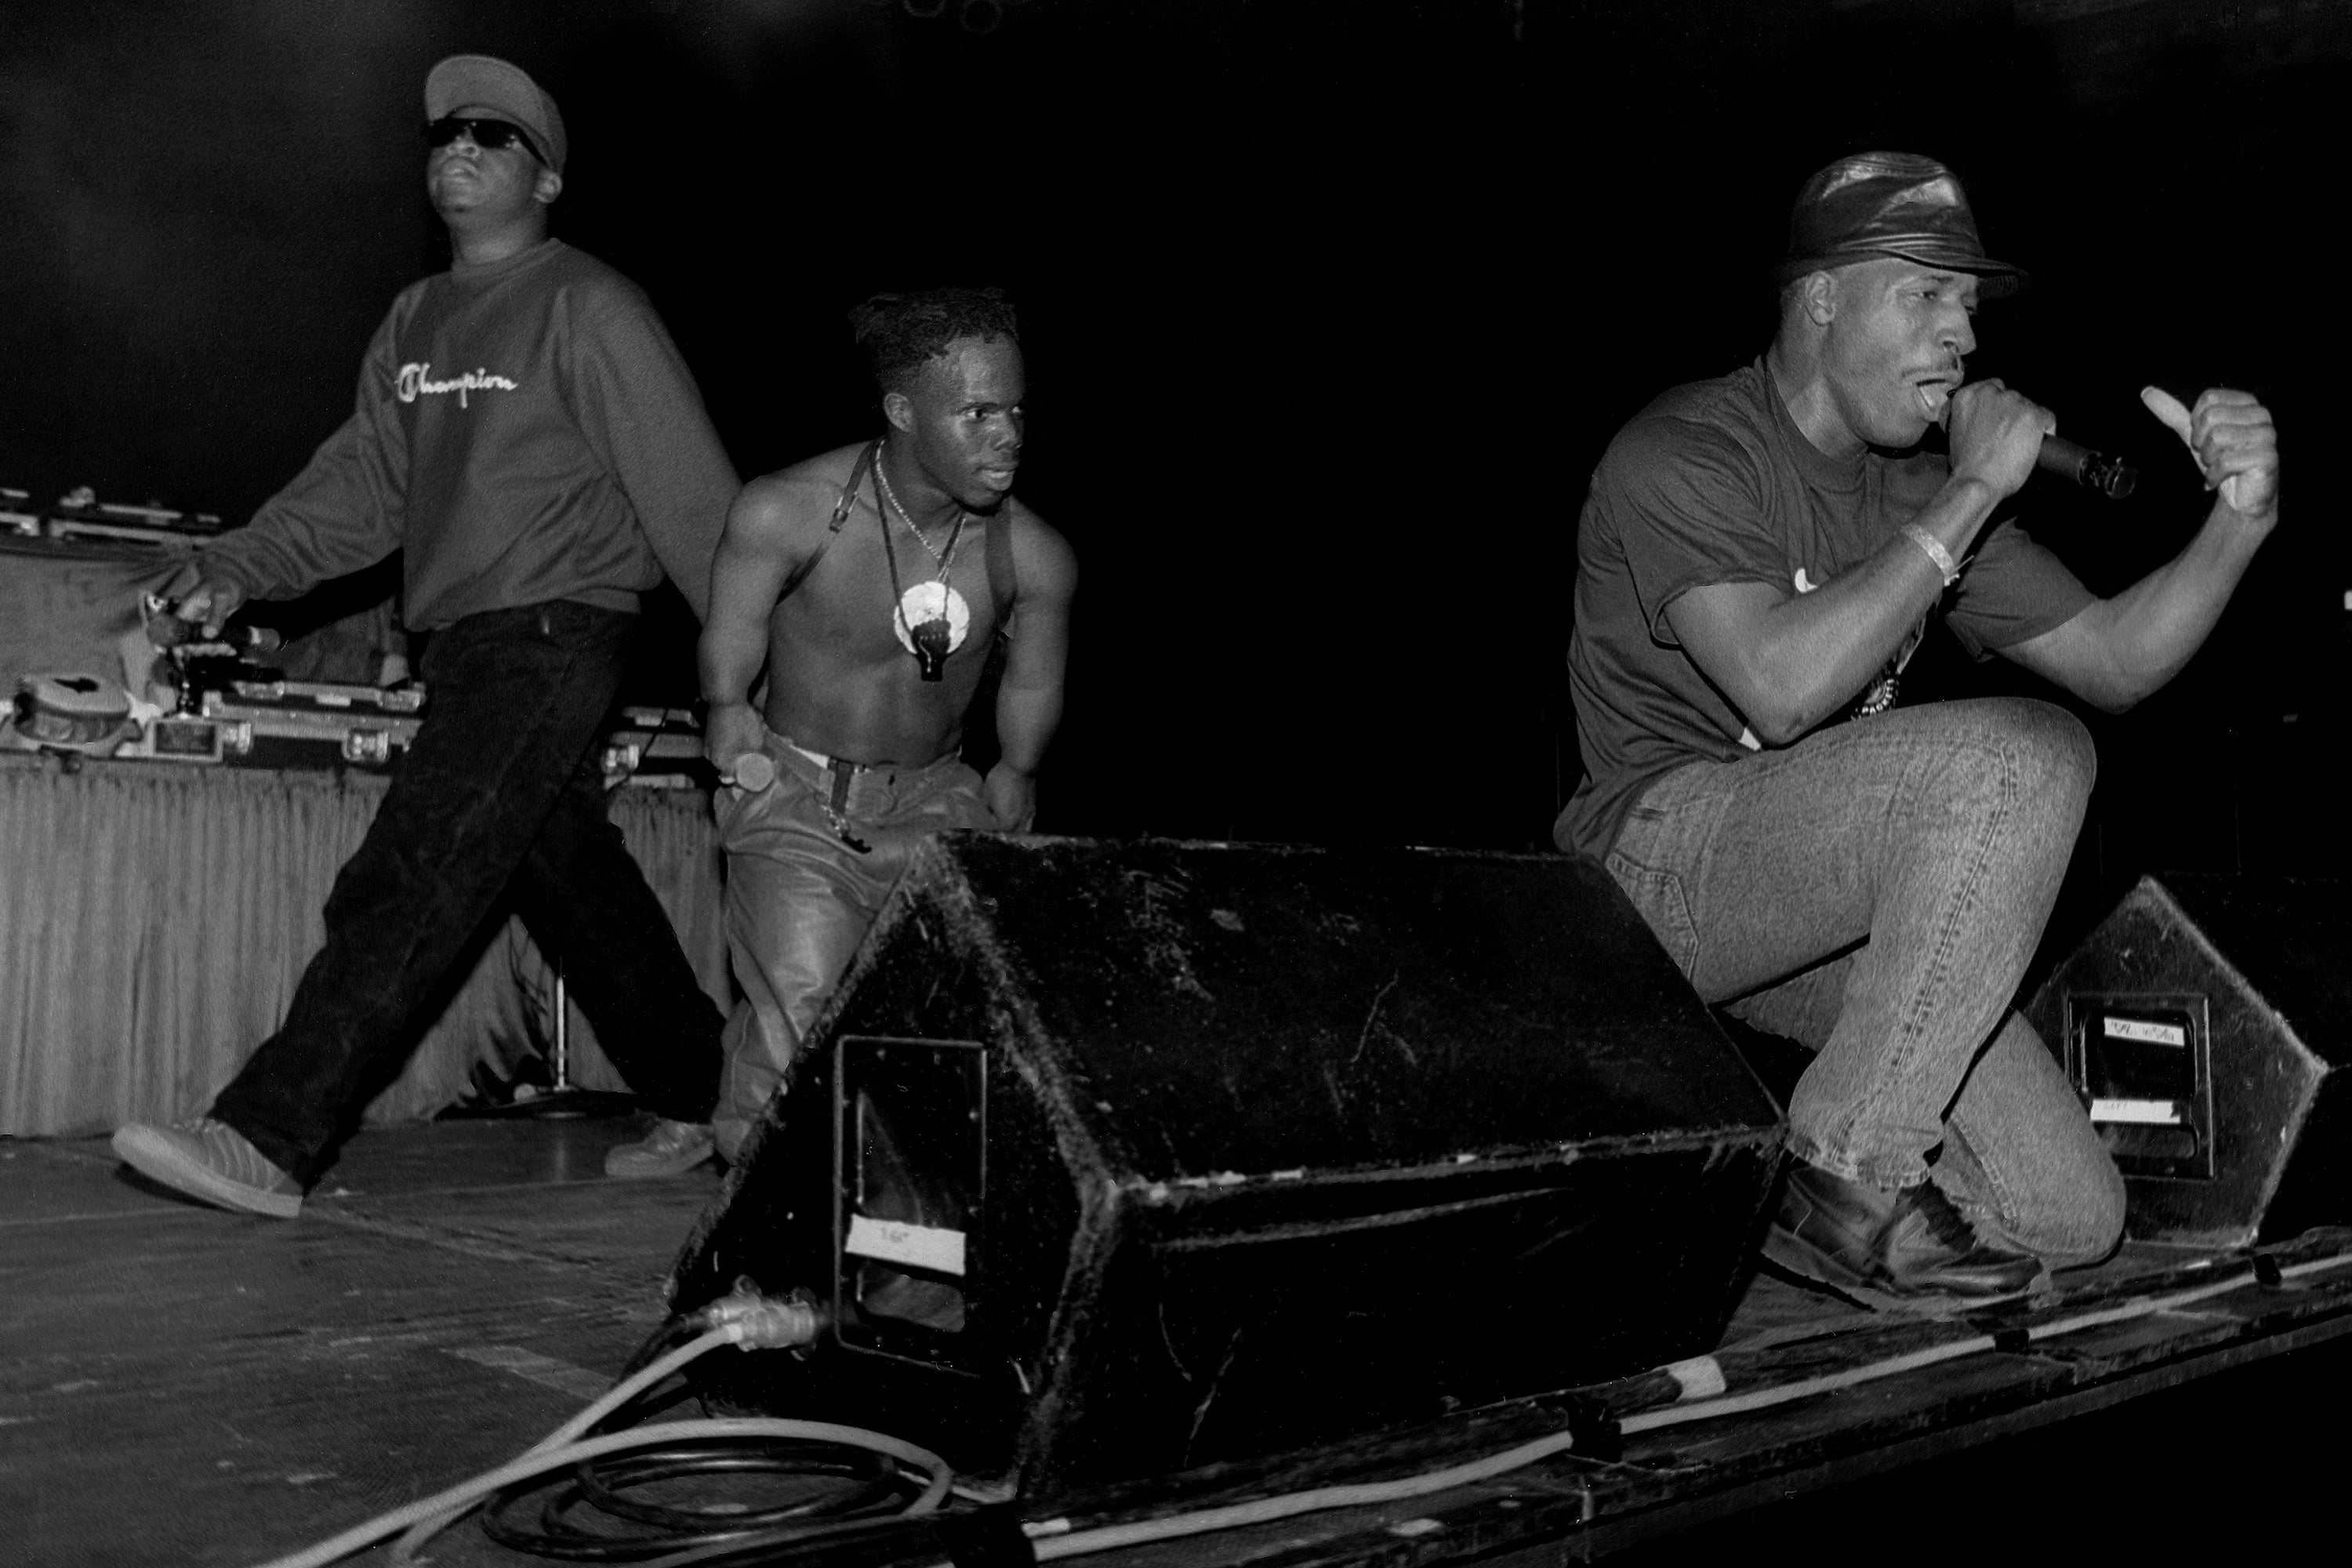 Scarface, Bushwick Bill and Willie D of The Geto Boys